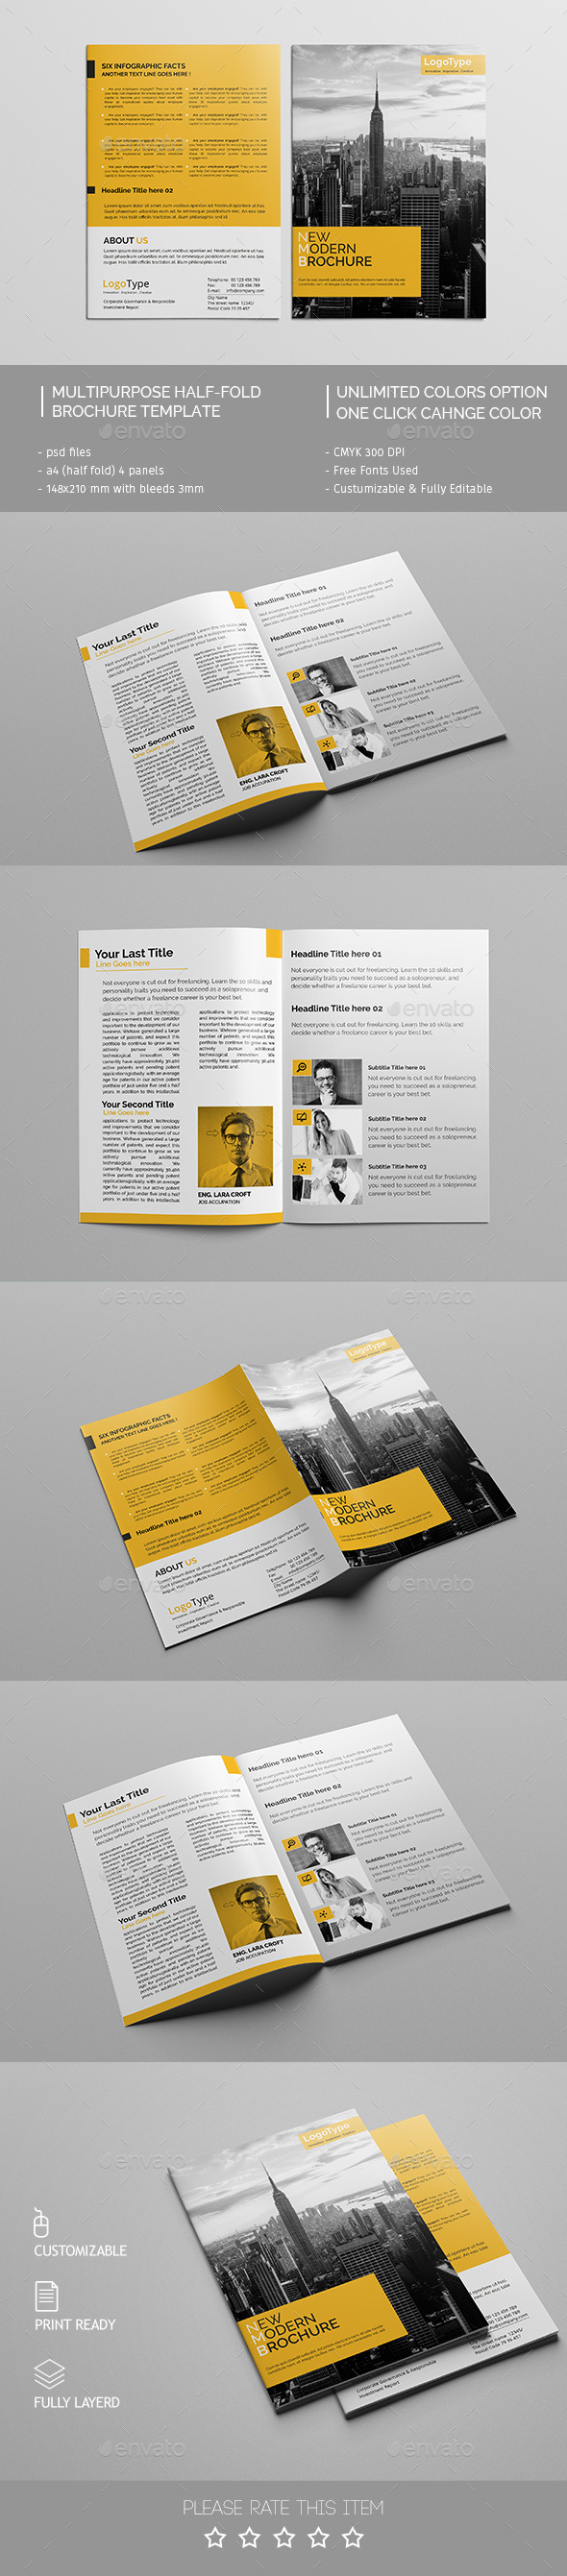 Corporate Bi-fold Brochure Template 04 - Corporate Brochures